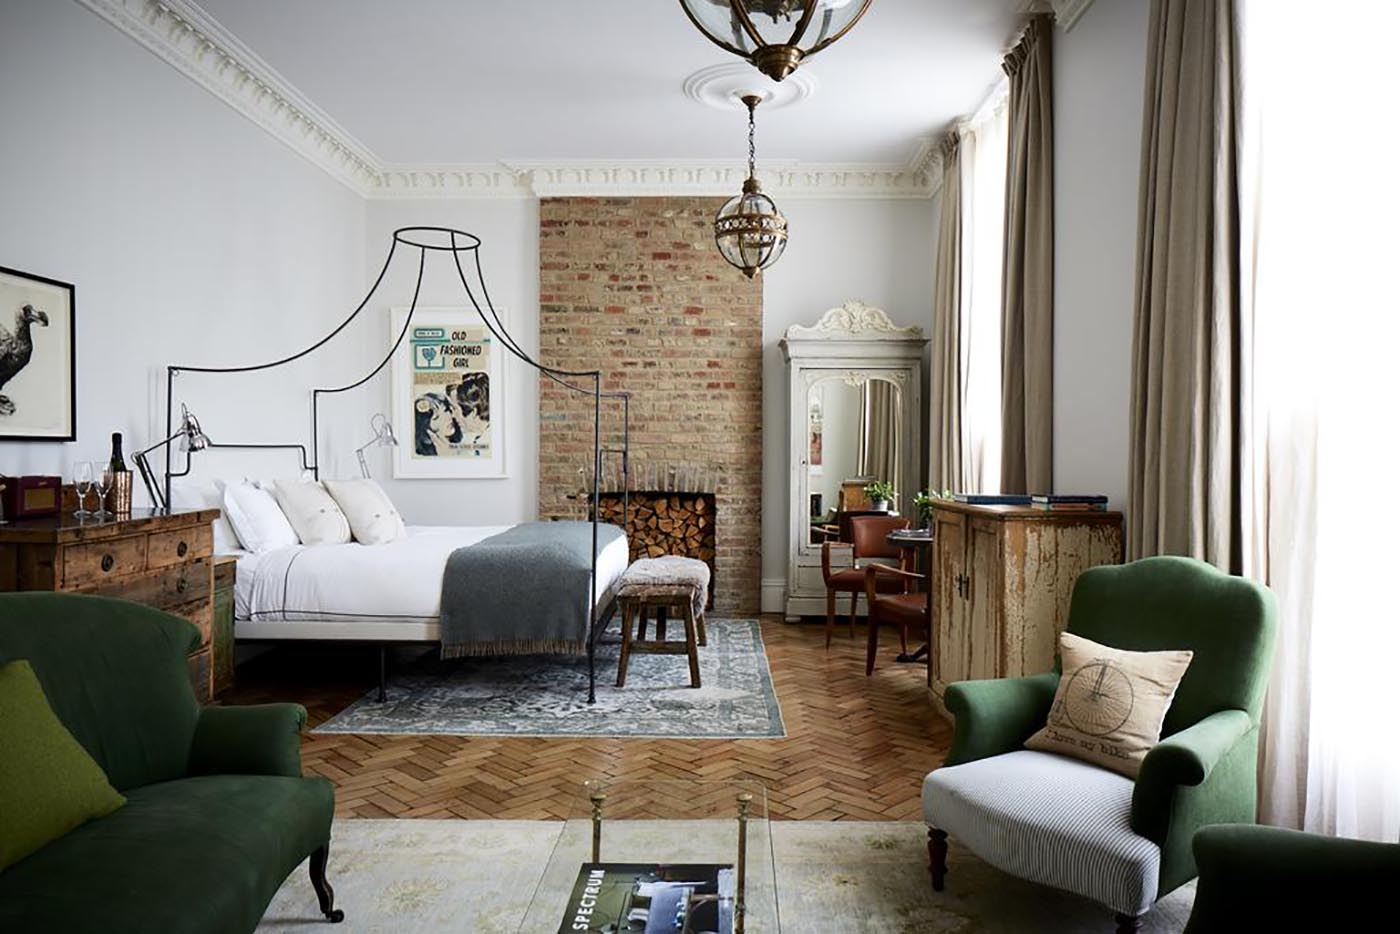 Best hotels in london 2018 edition the discoveries of for Boutique hotels london